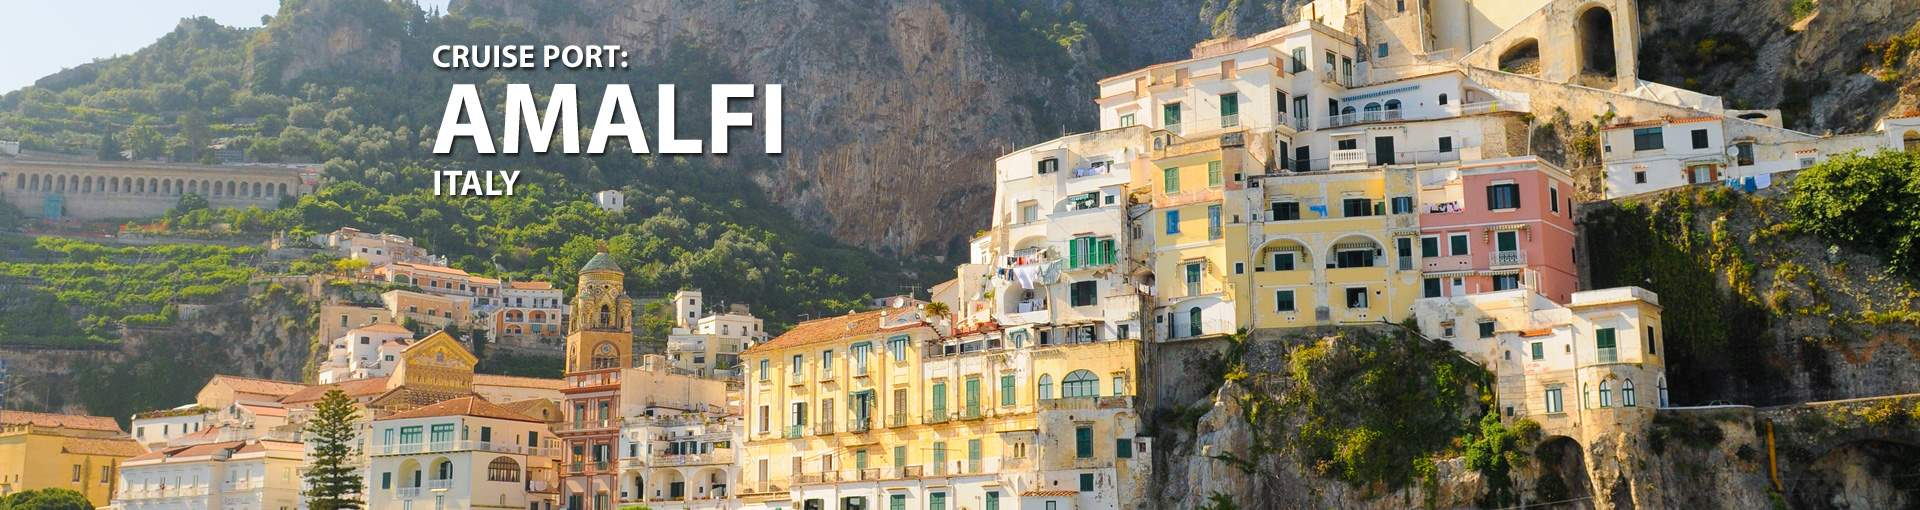 Cruises to Amalfi, Italy